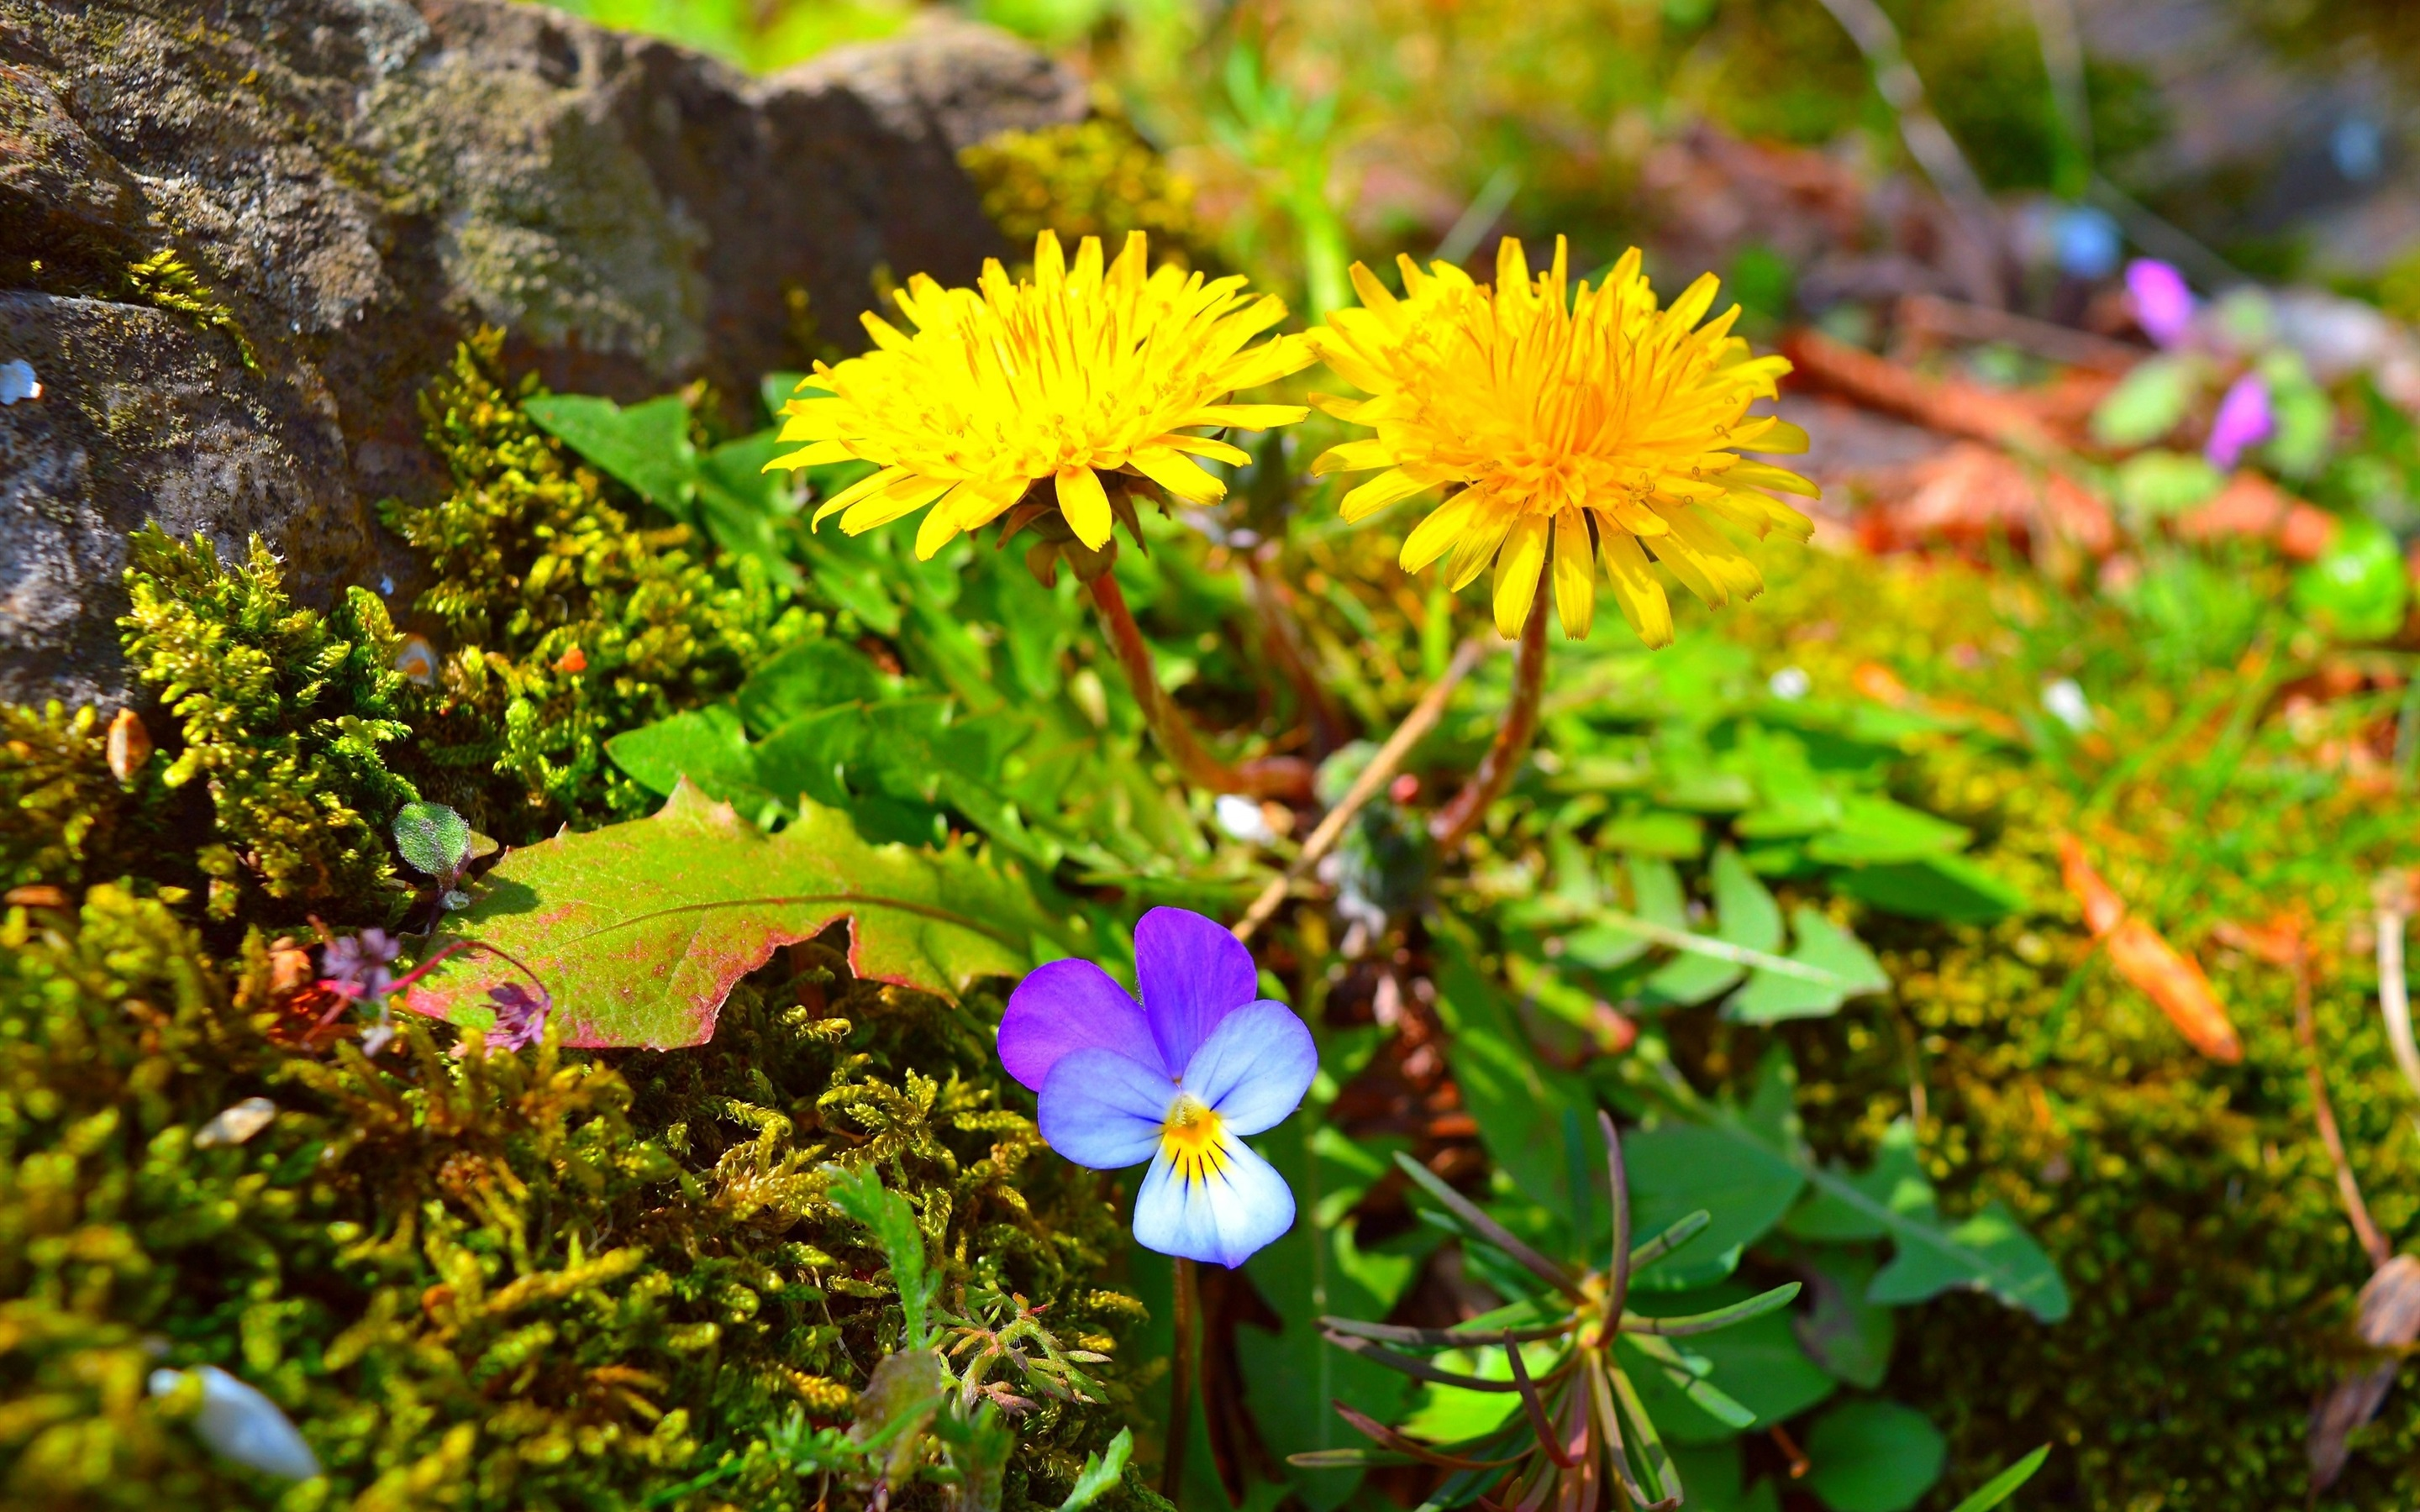 Wallpaper Spring Yellow And Purple Flowers 2880x1800 Hd Picture Image